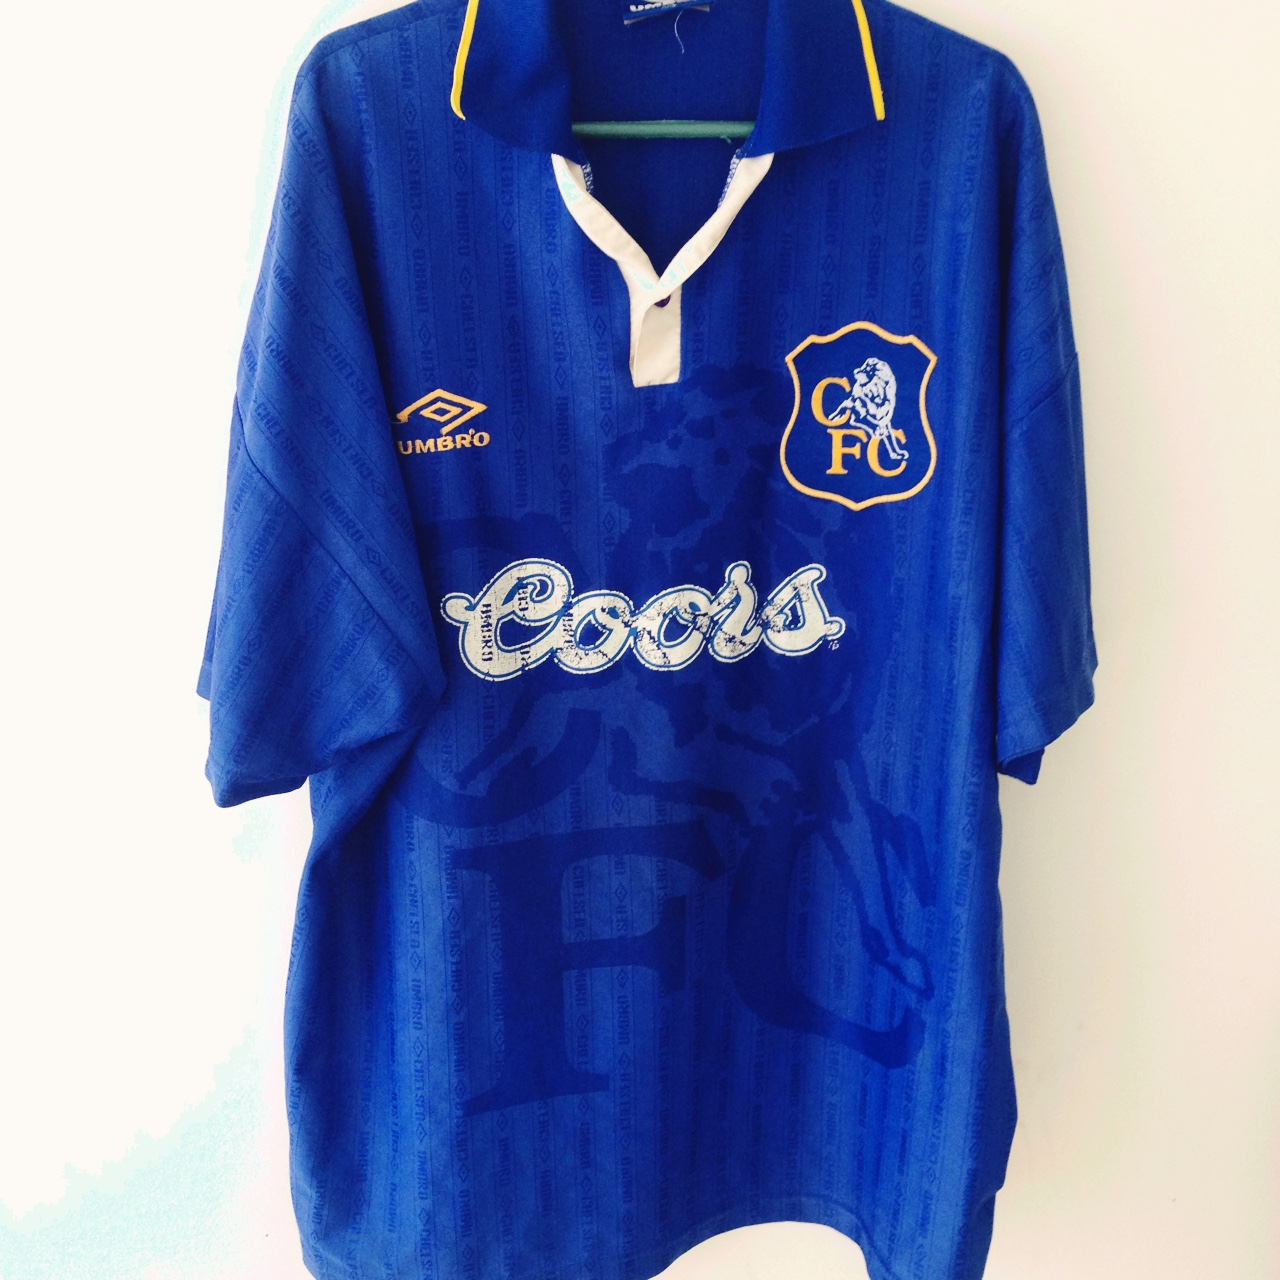 huge selection of b83e6 9a20a Vintage Chelsea 1995 Umbro Home jersey. The classic ...